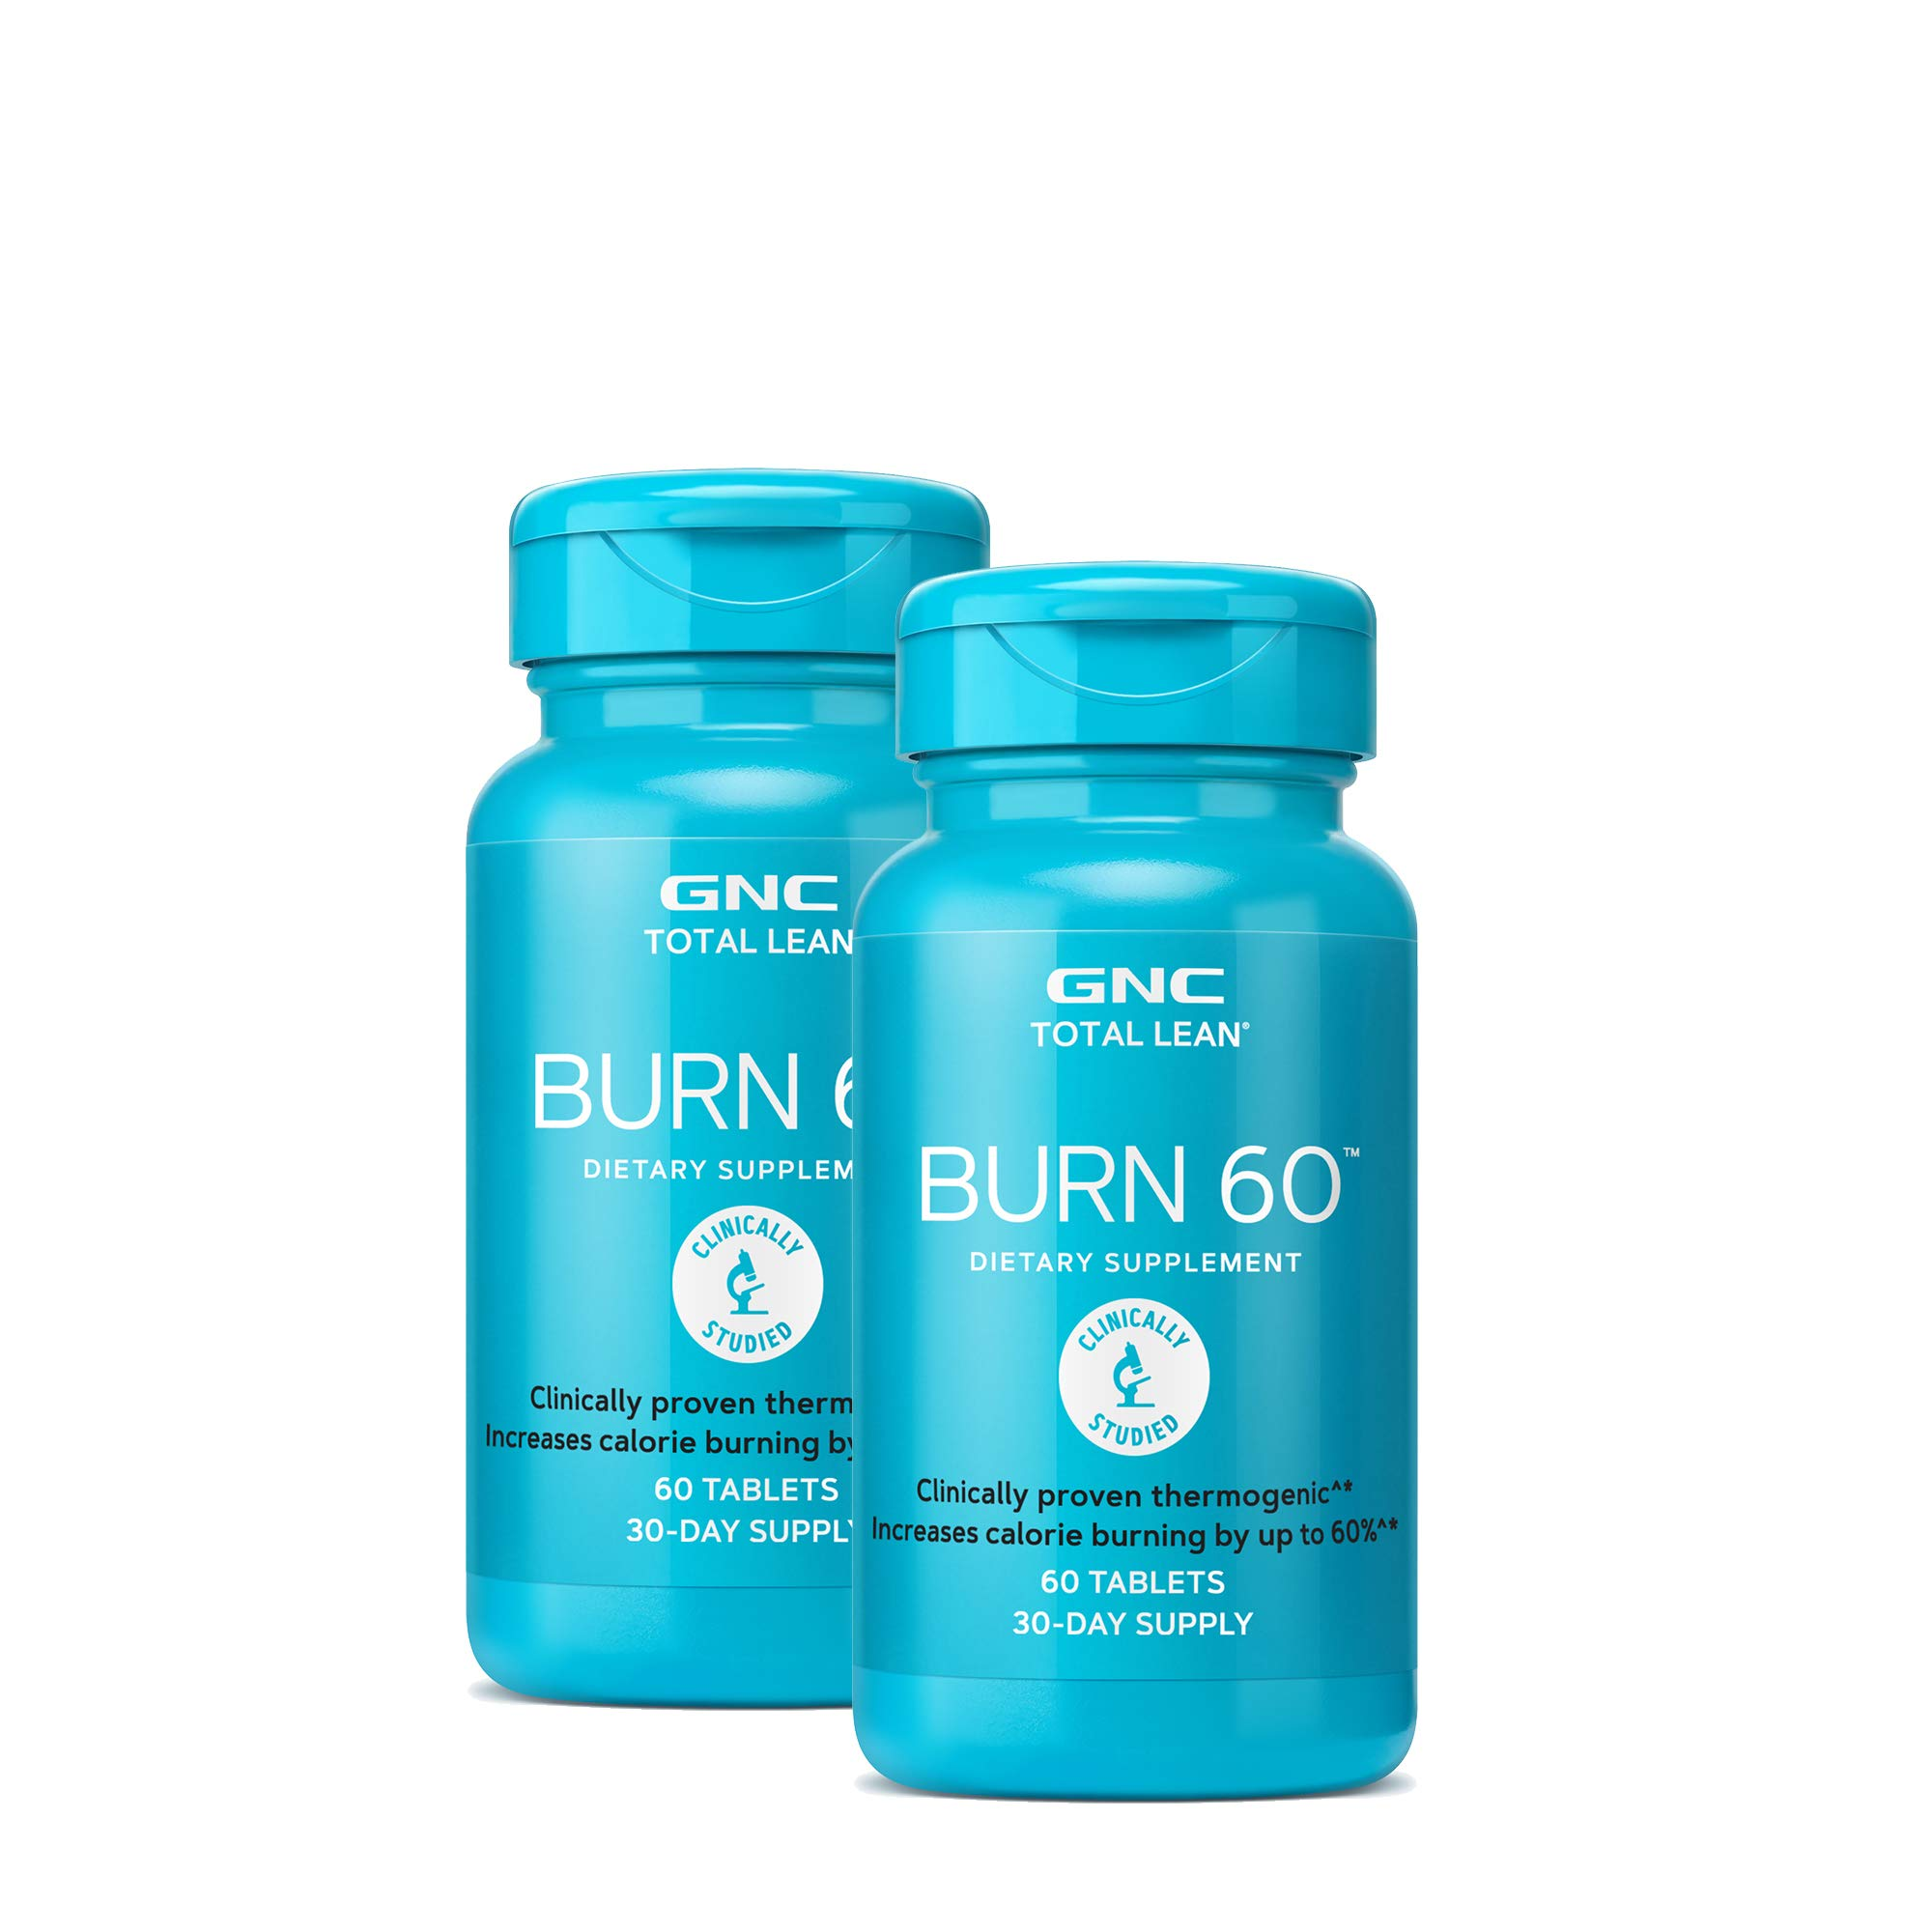 GNC Total Lean Burn 60 - Twin Pack